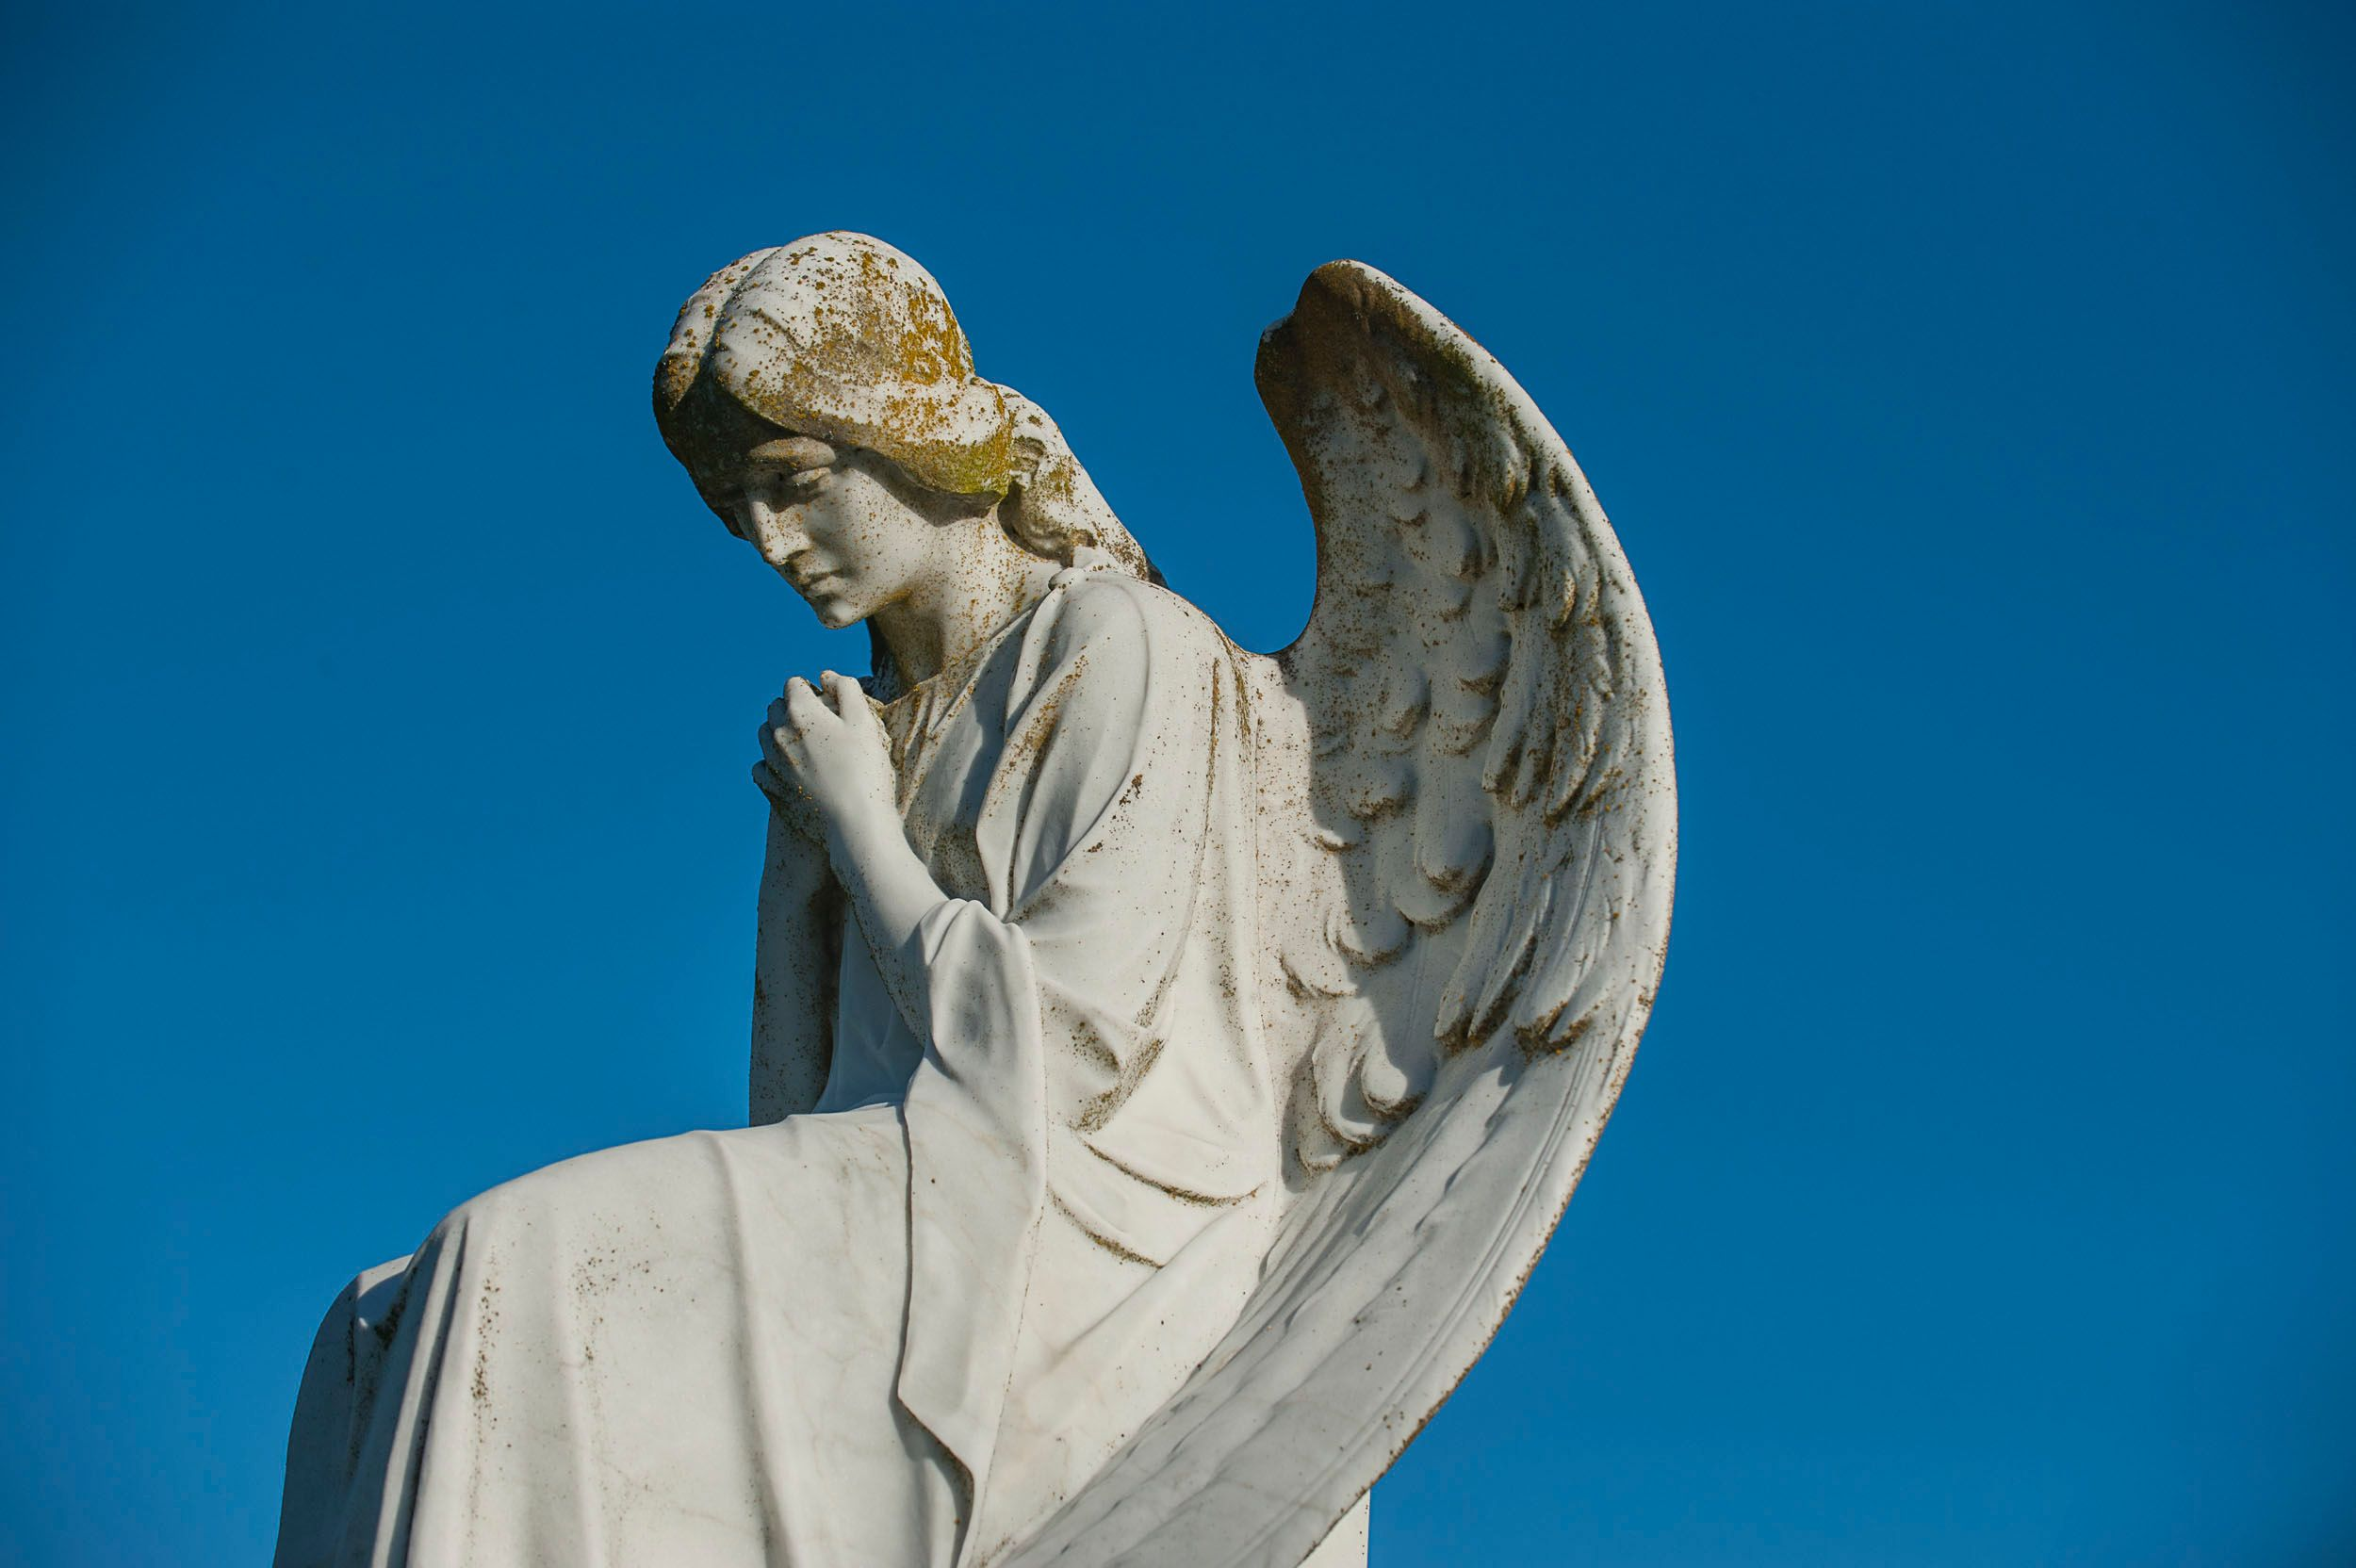 Marble Angel against Blue Sky